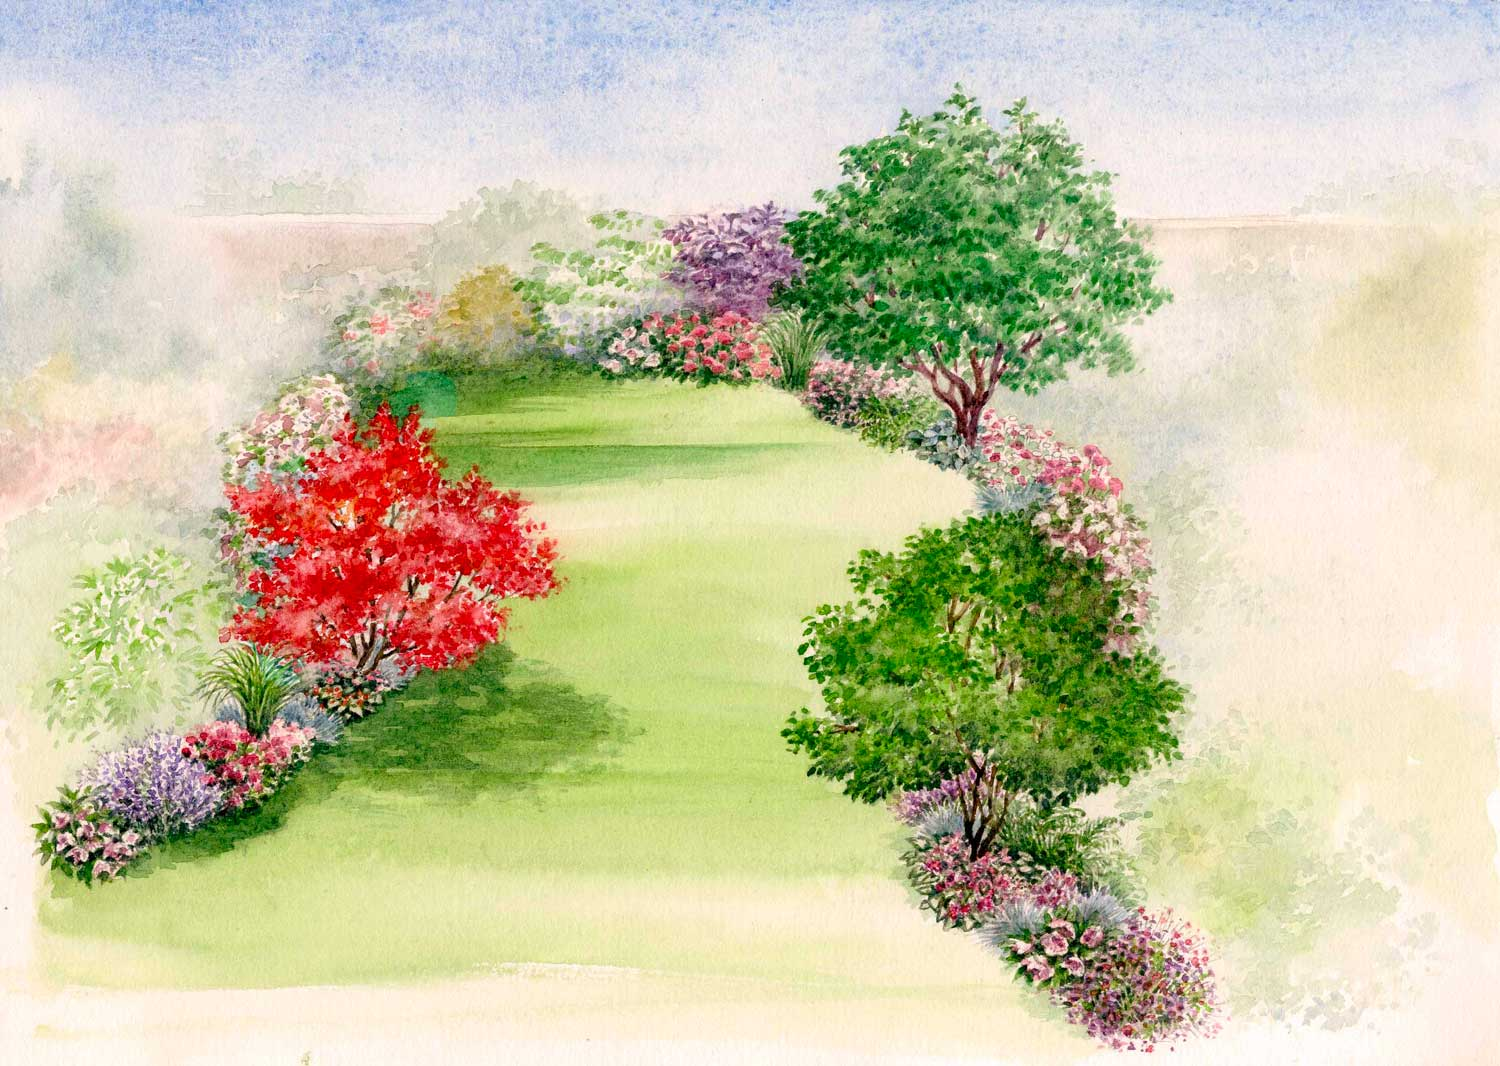 Watercolour of a Free garden